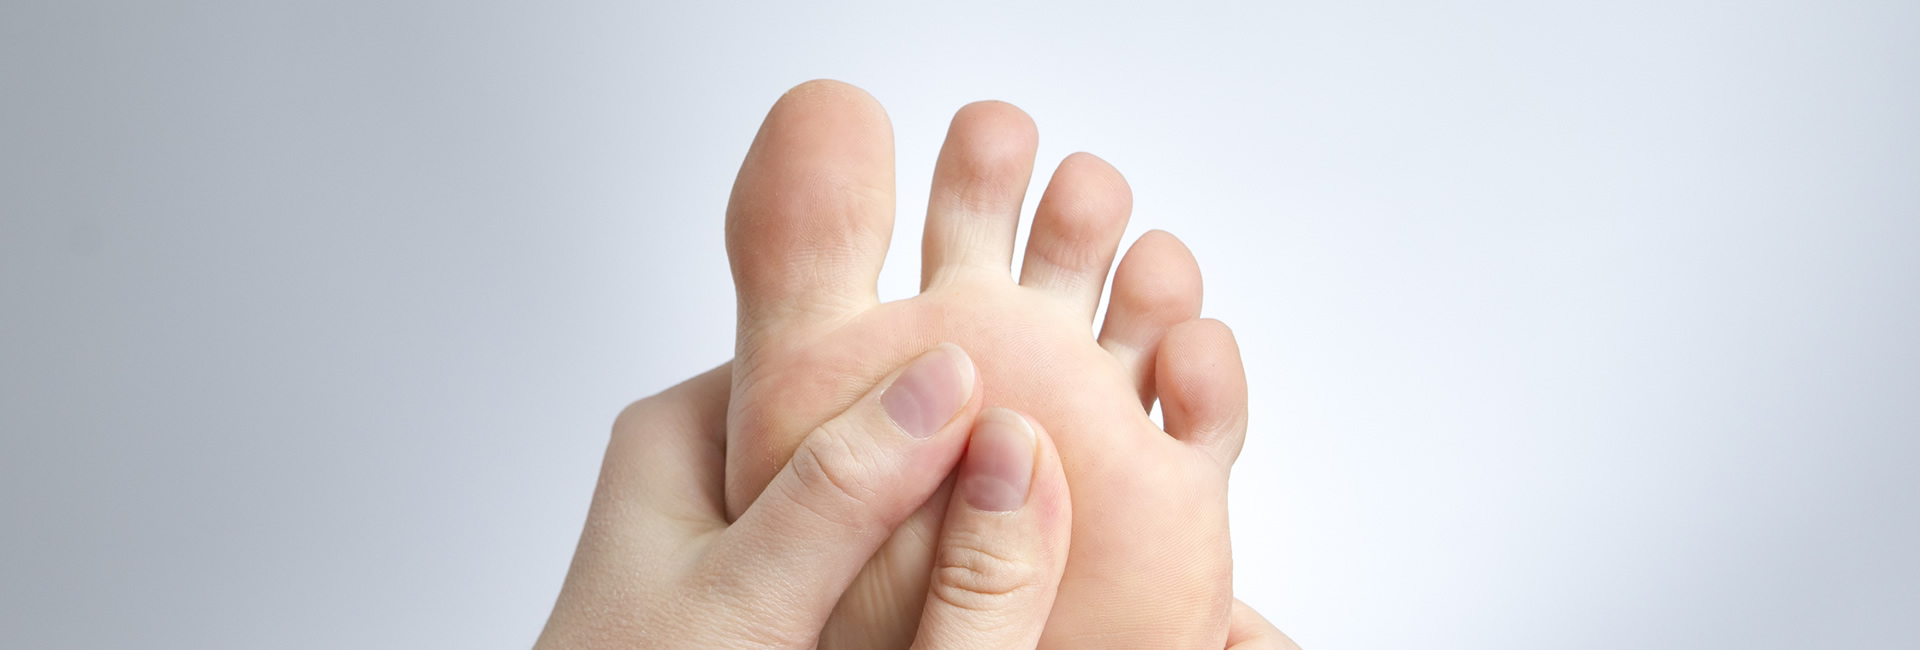 Farmington Hills, Michigian Podiatrist